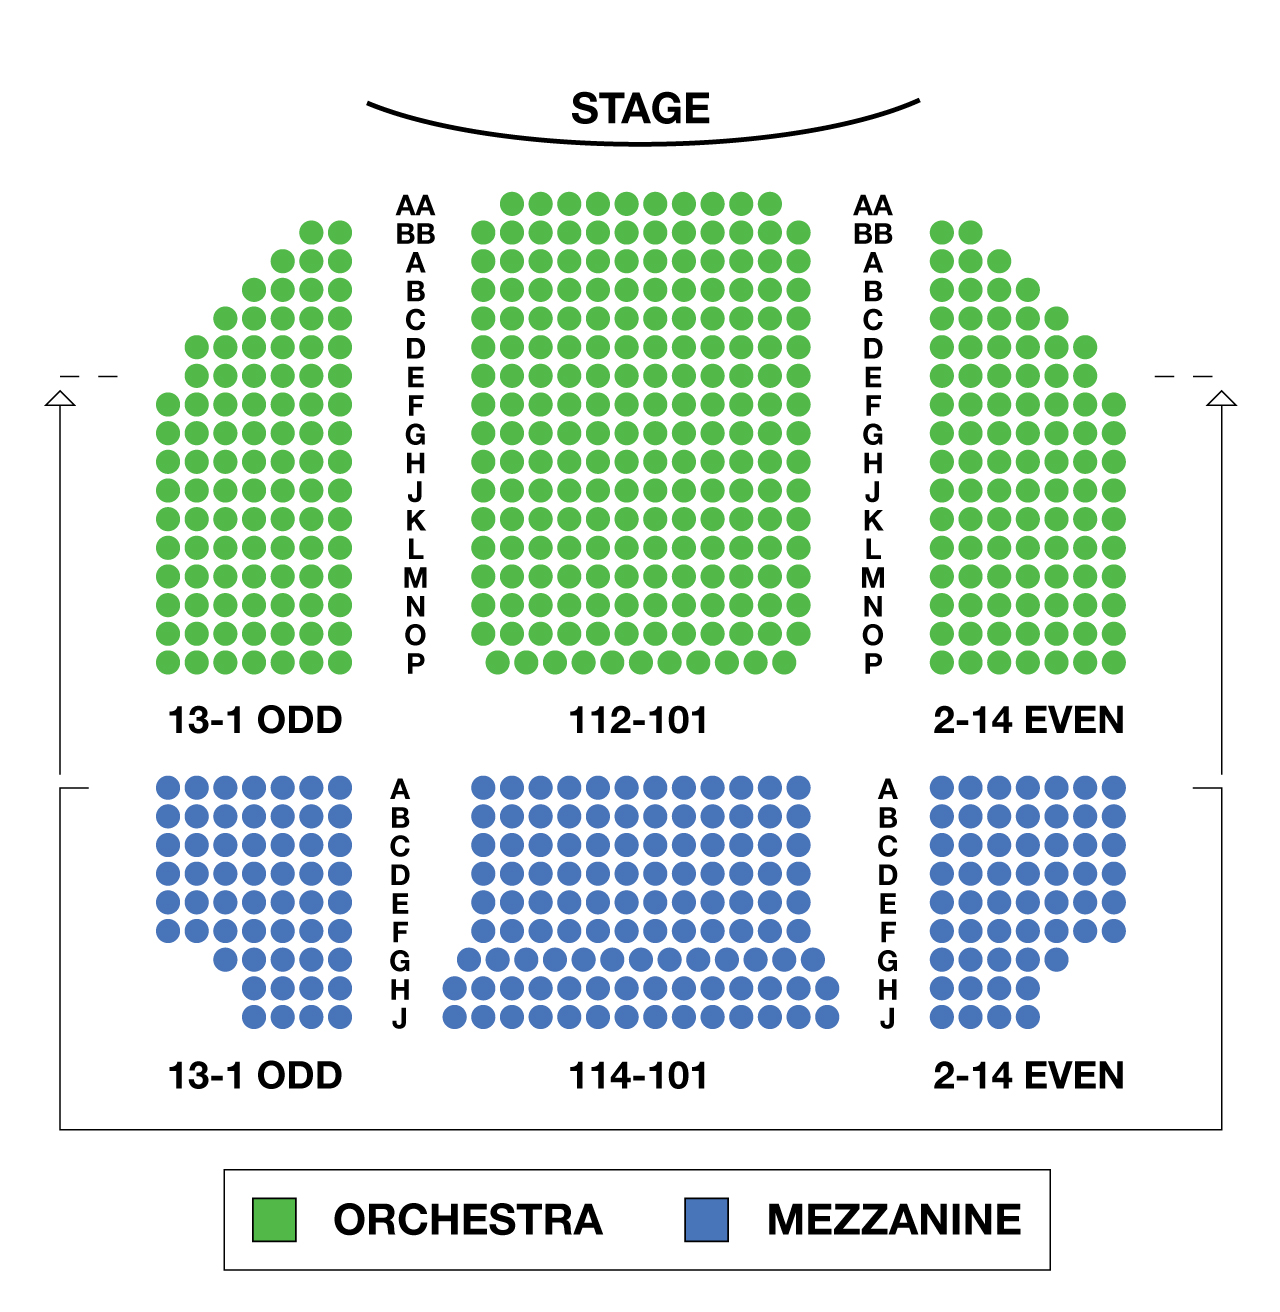 helen hayes theatre large broadway seating charts. Black Bedroom Furniture Sets. Home Design Ideas